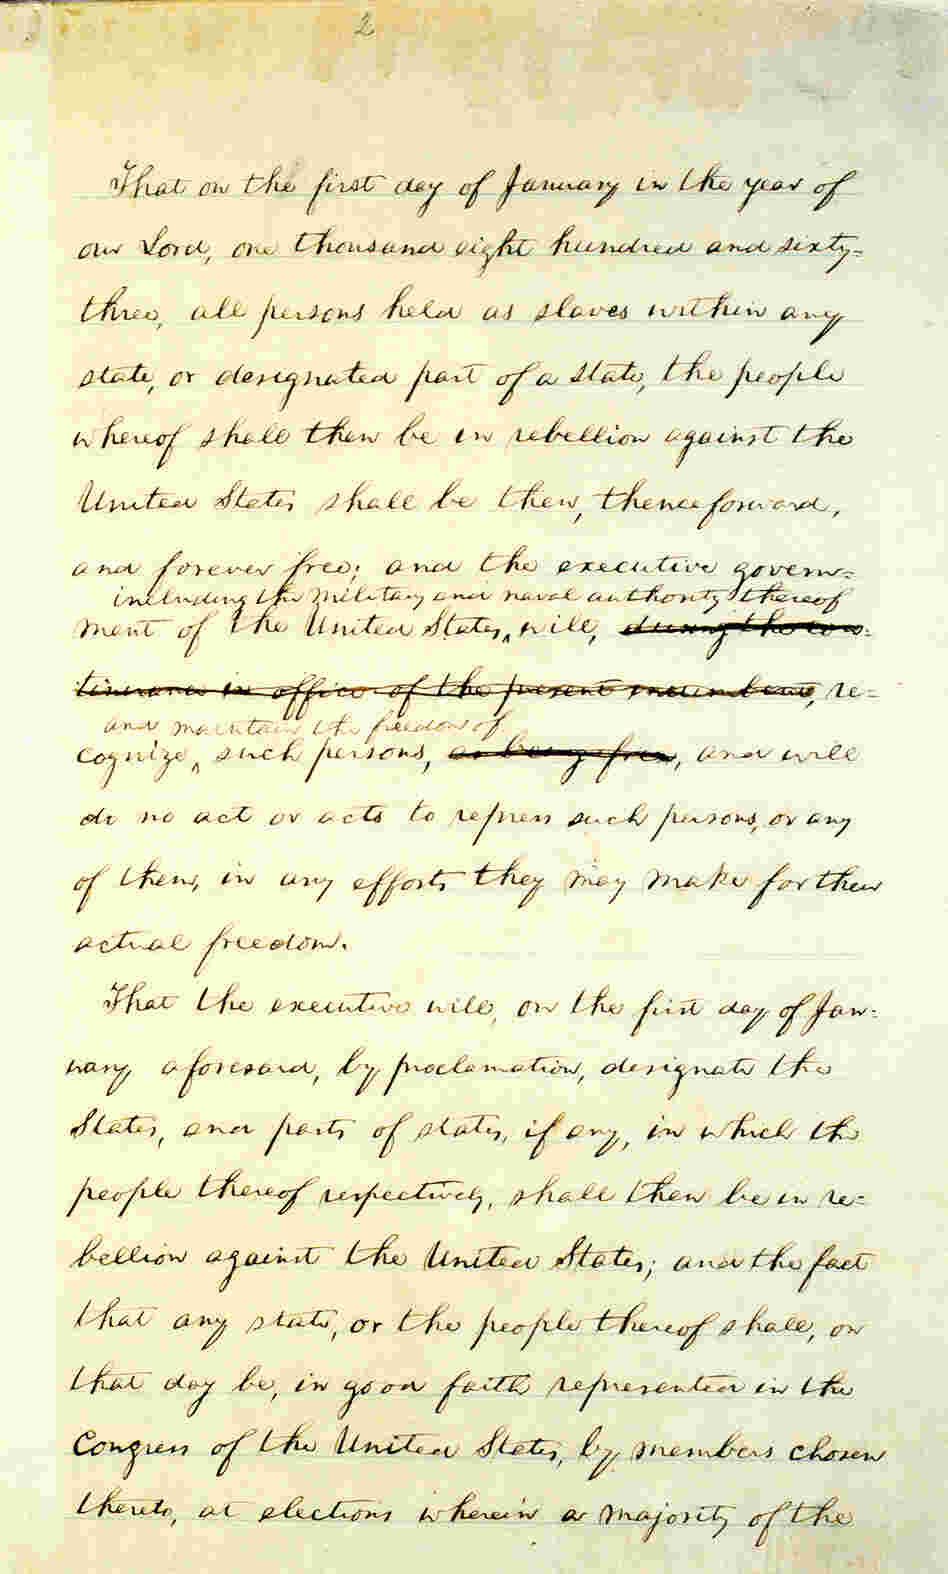 Page 2 of Abraham Lincoln's hand-written Preliminary Emancipation Proclamation.